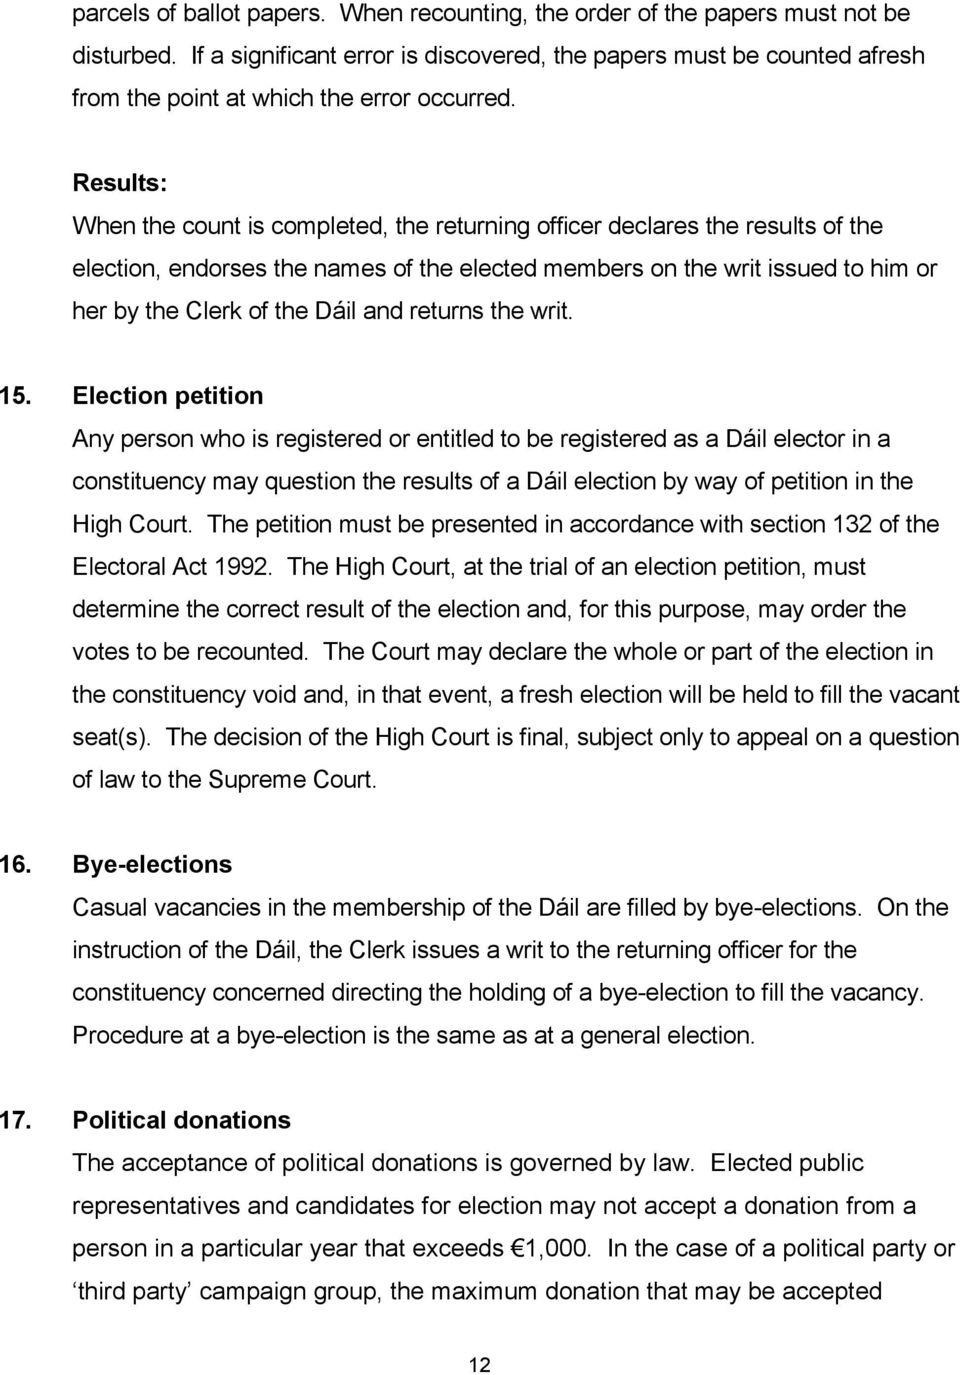 Results: When the count is completed, the returning officer declares the results of the election, endorses the names of the elected members on the writ issued to him or her by the Clerk of the Dáil